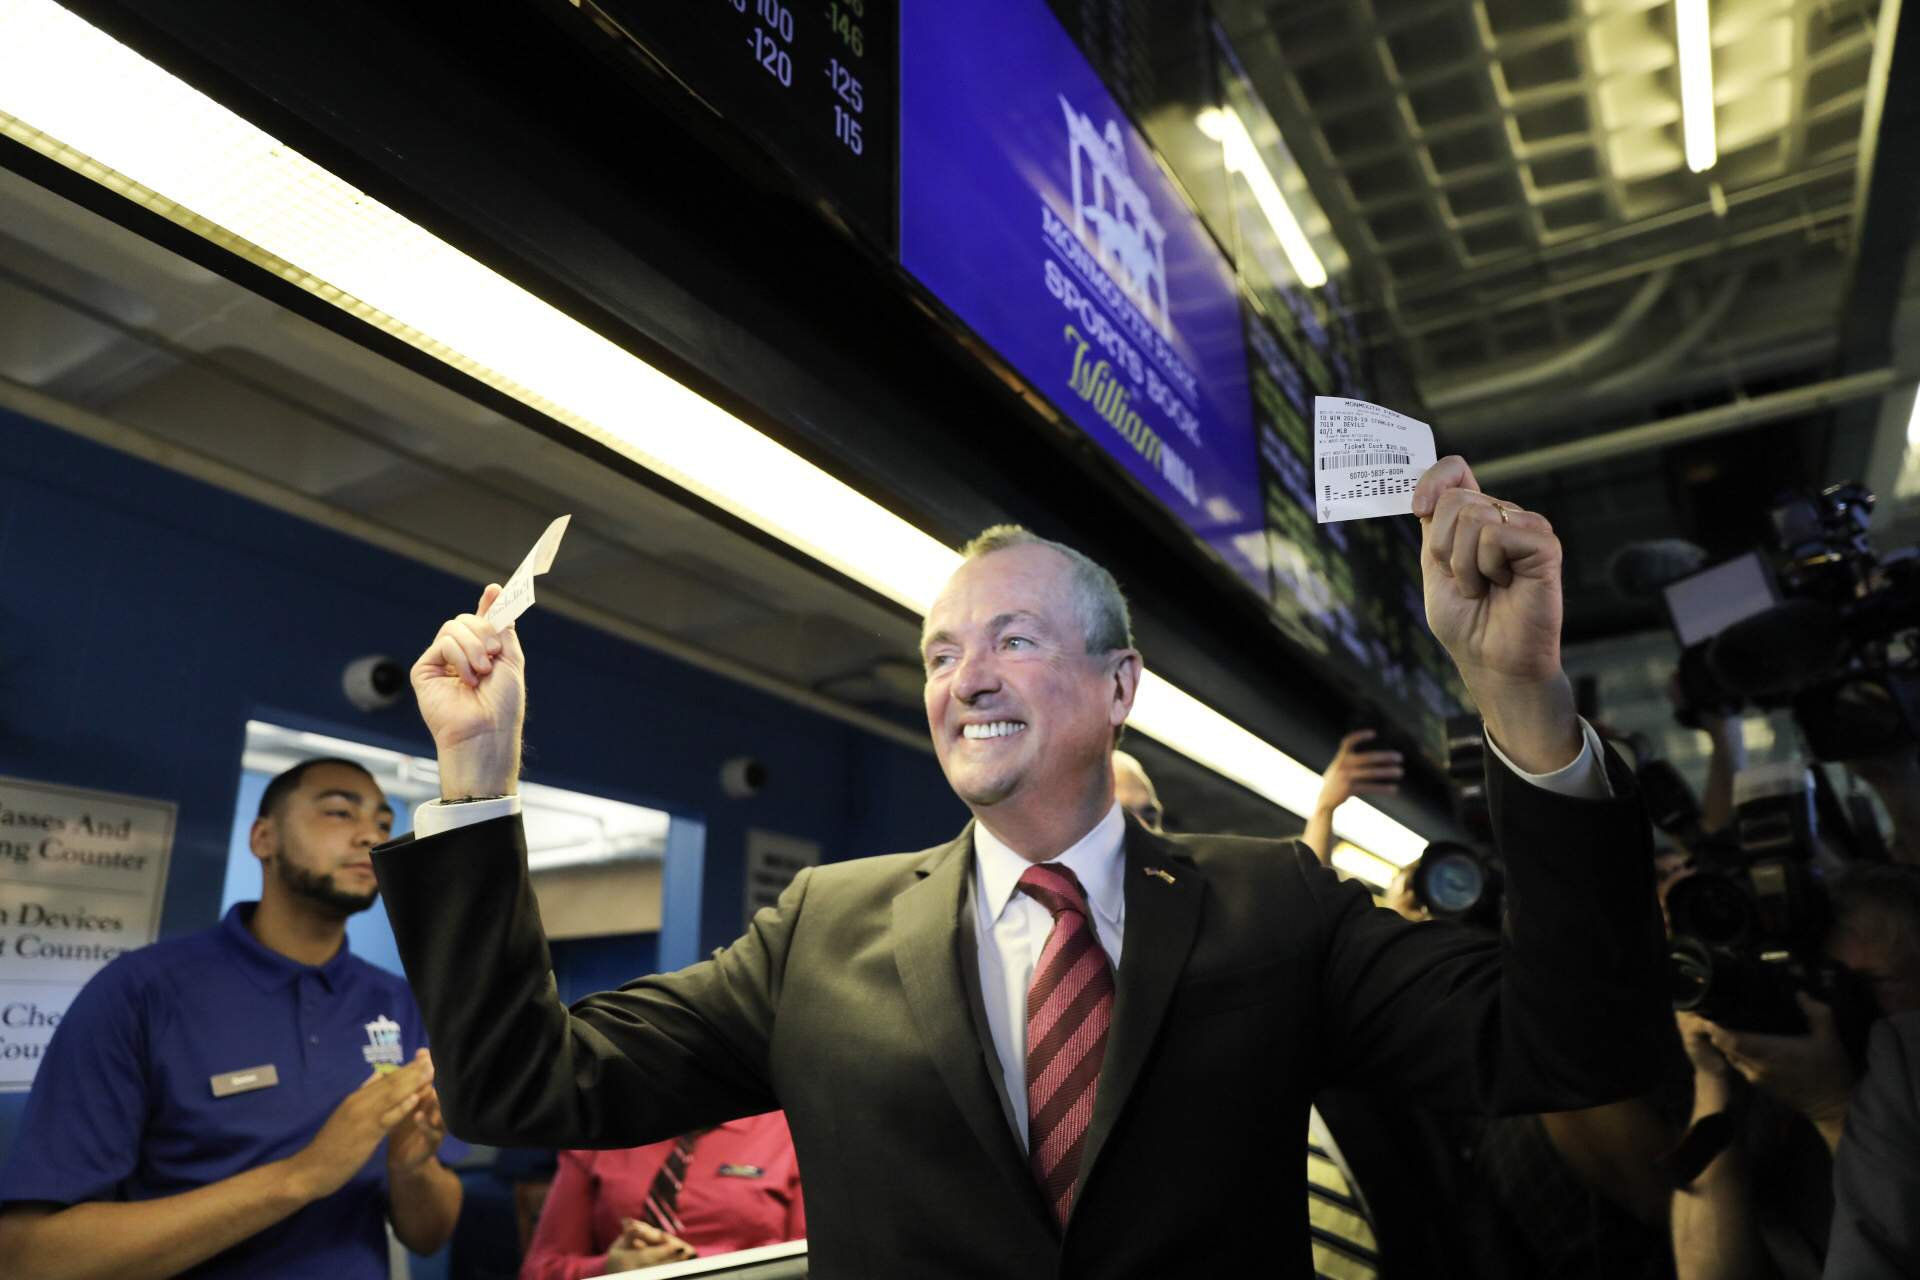 Gov. Murphy places his bet.